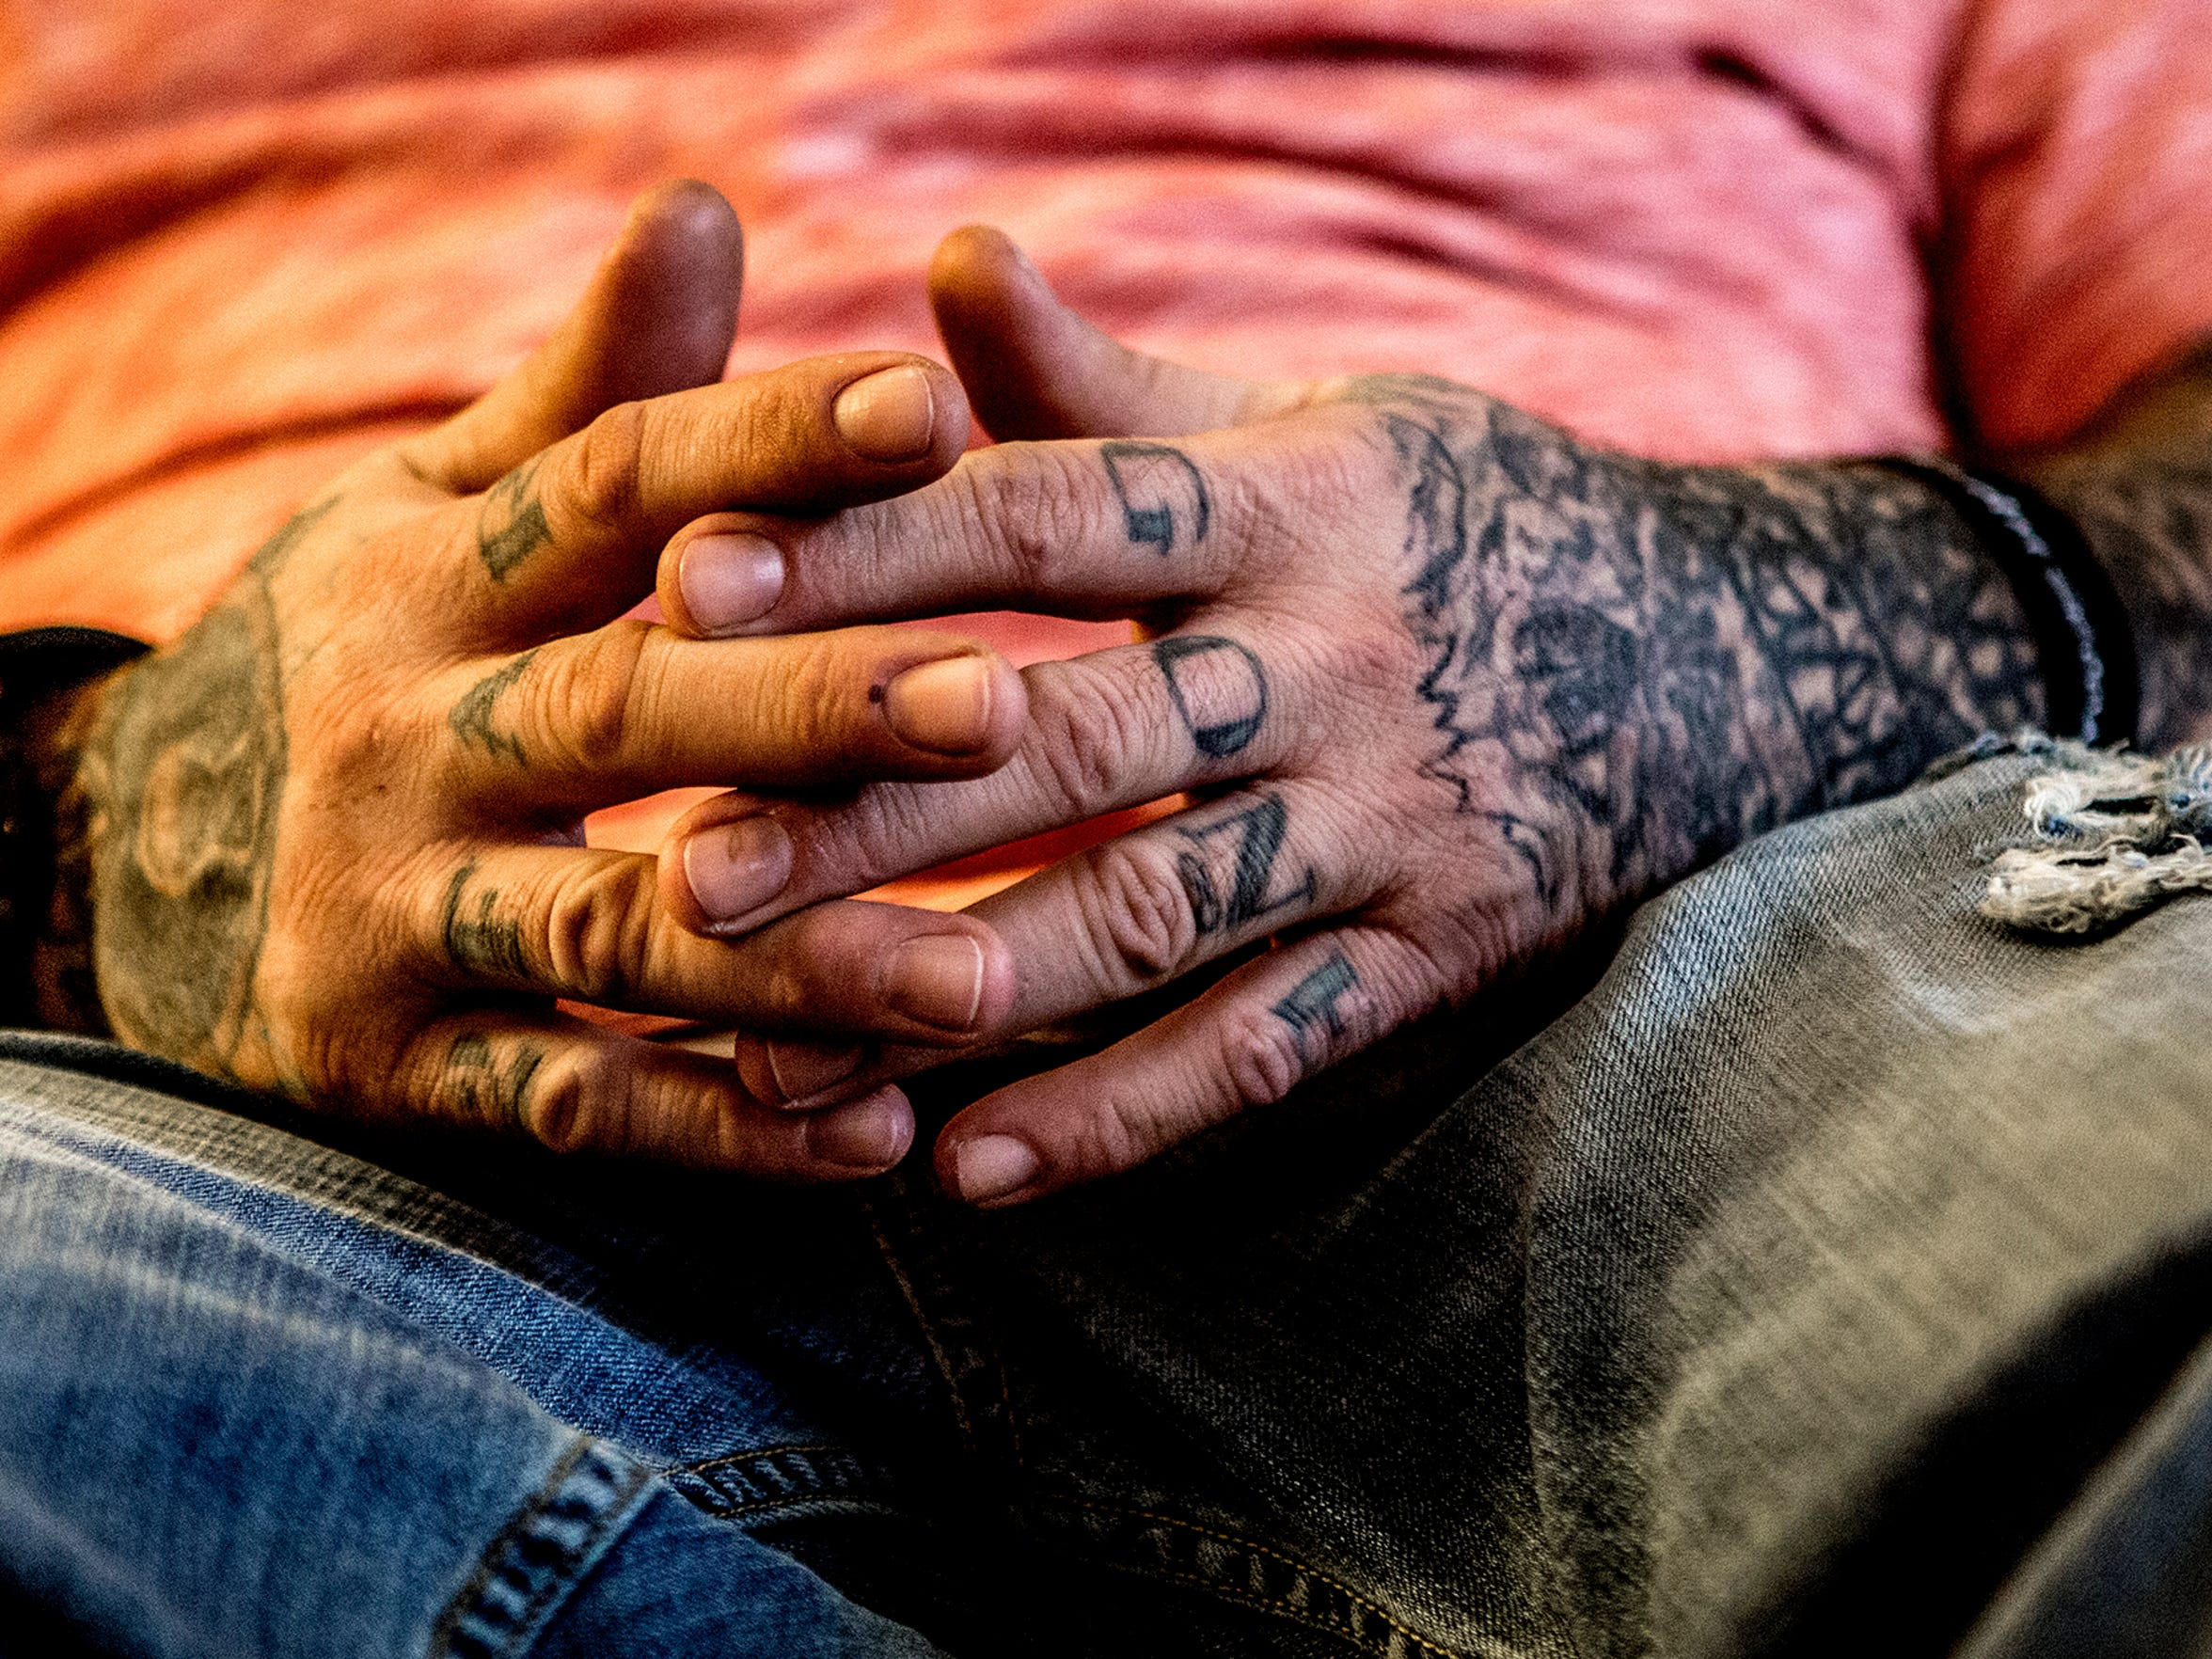 William Rector folds his tattooed hands while speaking